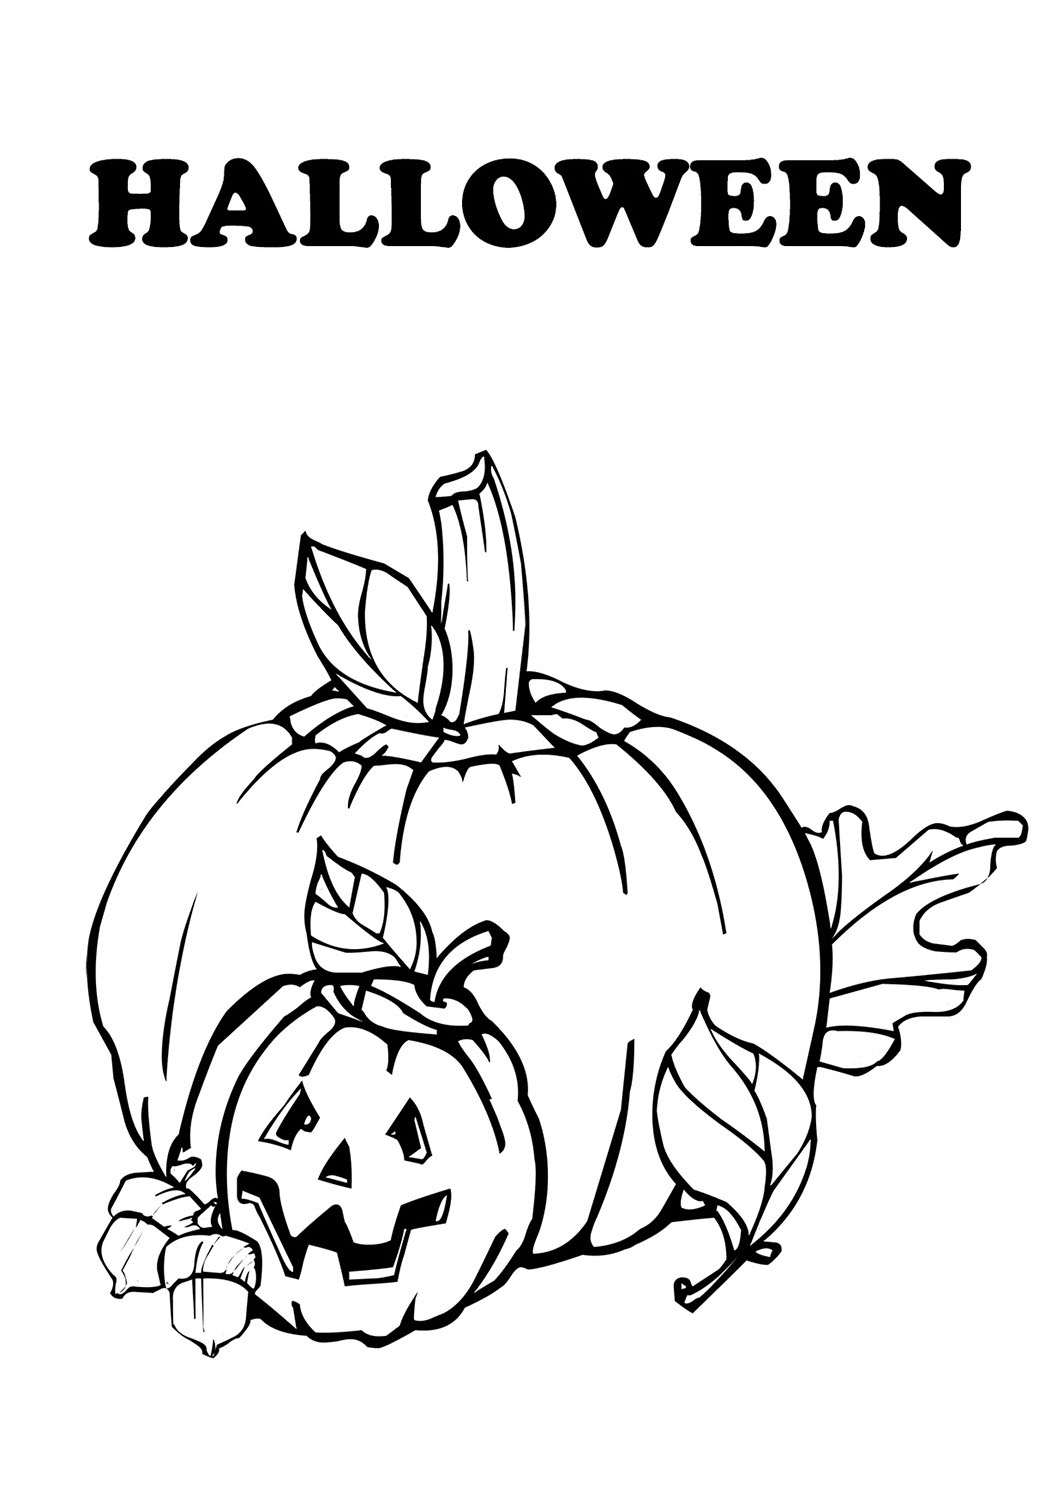 halloween pictures of pumpkins to color halloween coloring pages pumpkins pictures color of to halloween